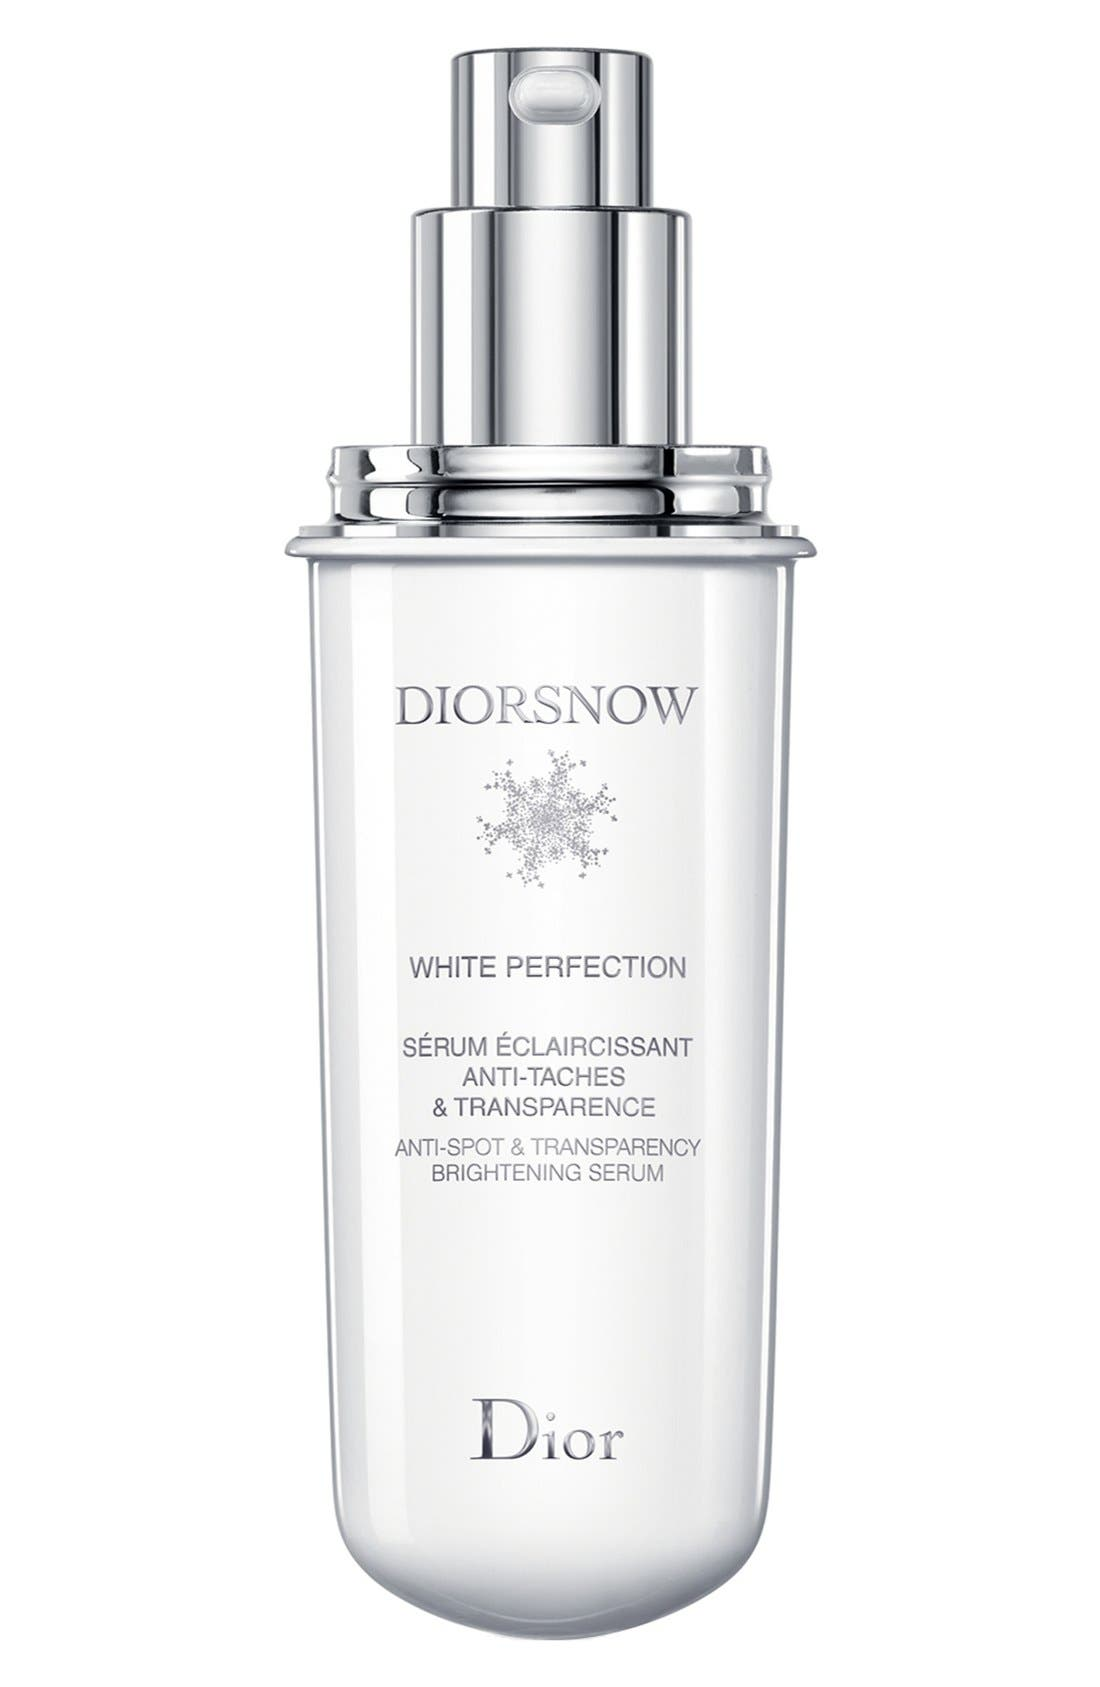 'Diorsnow' White Perfection Anti-Spot & Transparency Brightening Serum Refill,                         Main,                         color, 000